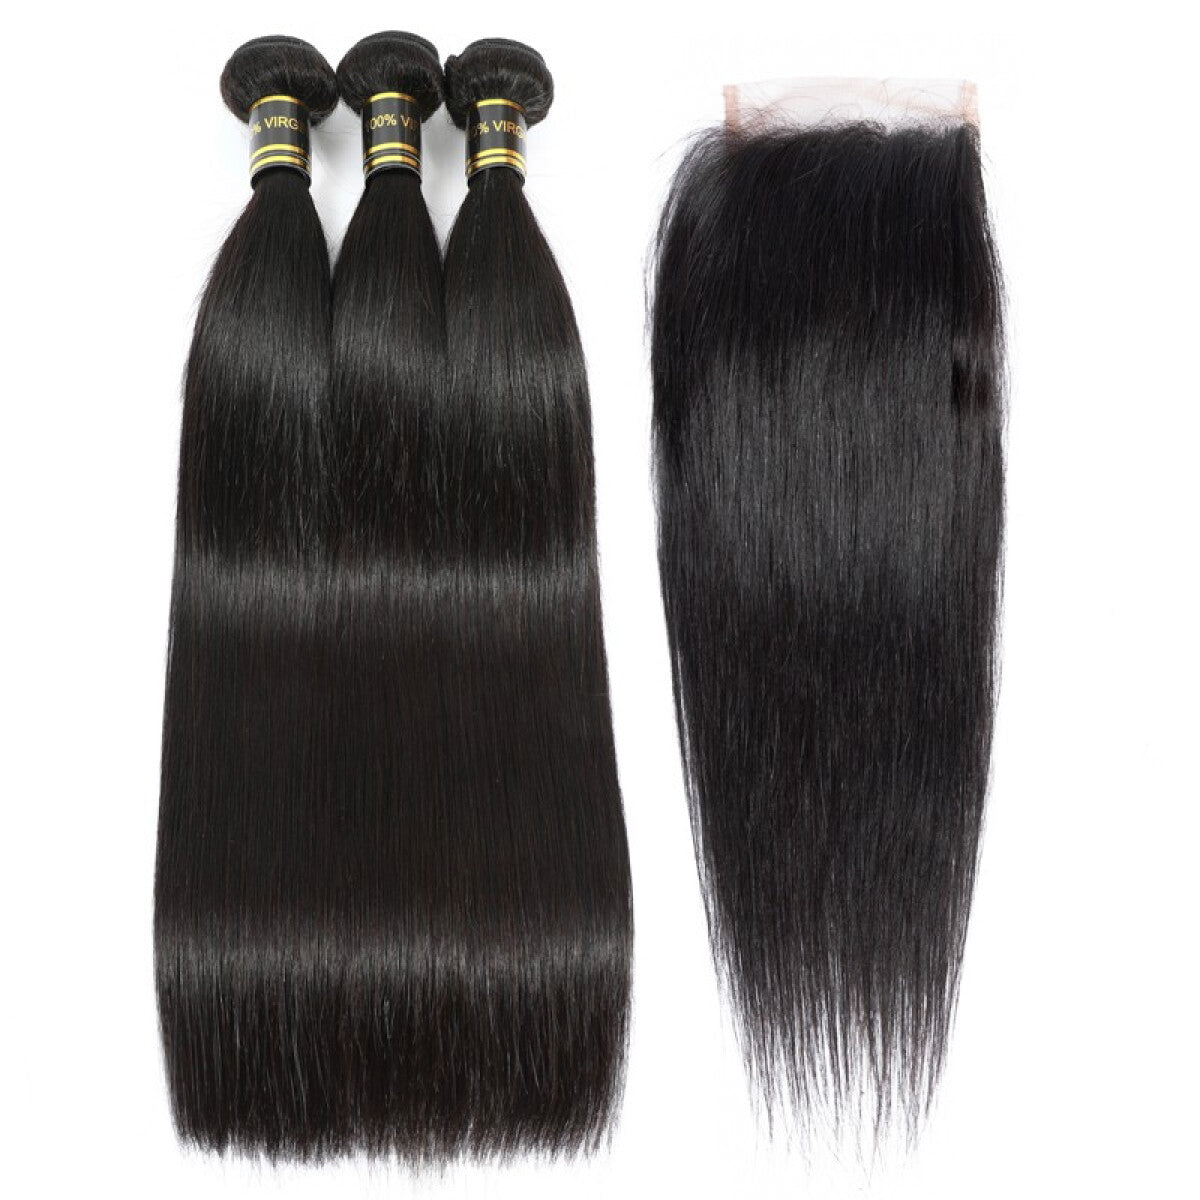 Beroyal Straight Hair 3 Bundles with Closure Free Part Brazilian Virgin Human Hair, 16